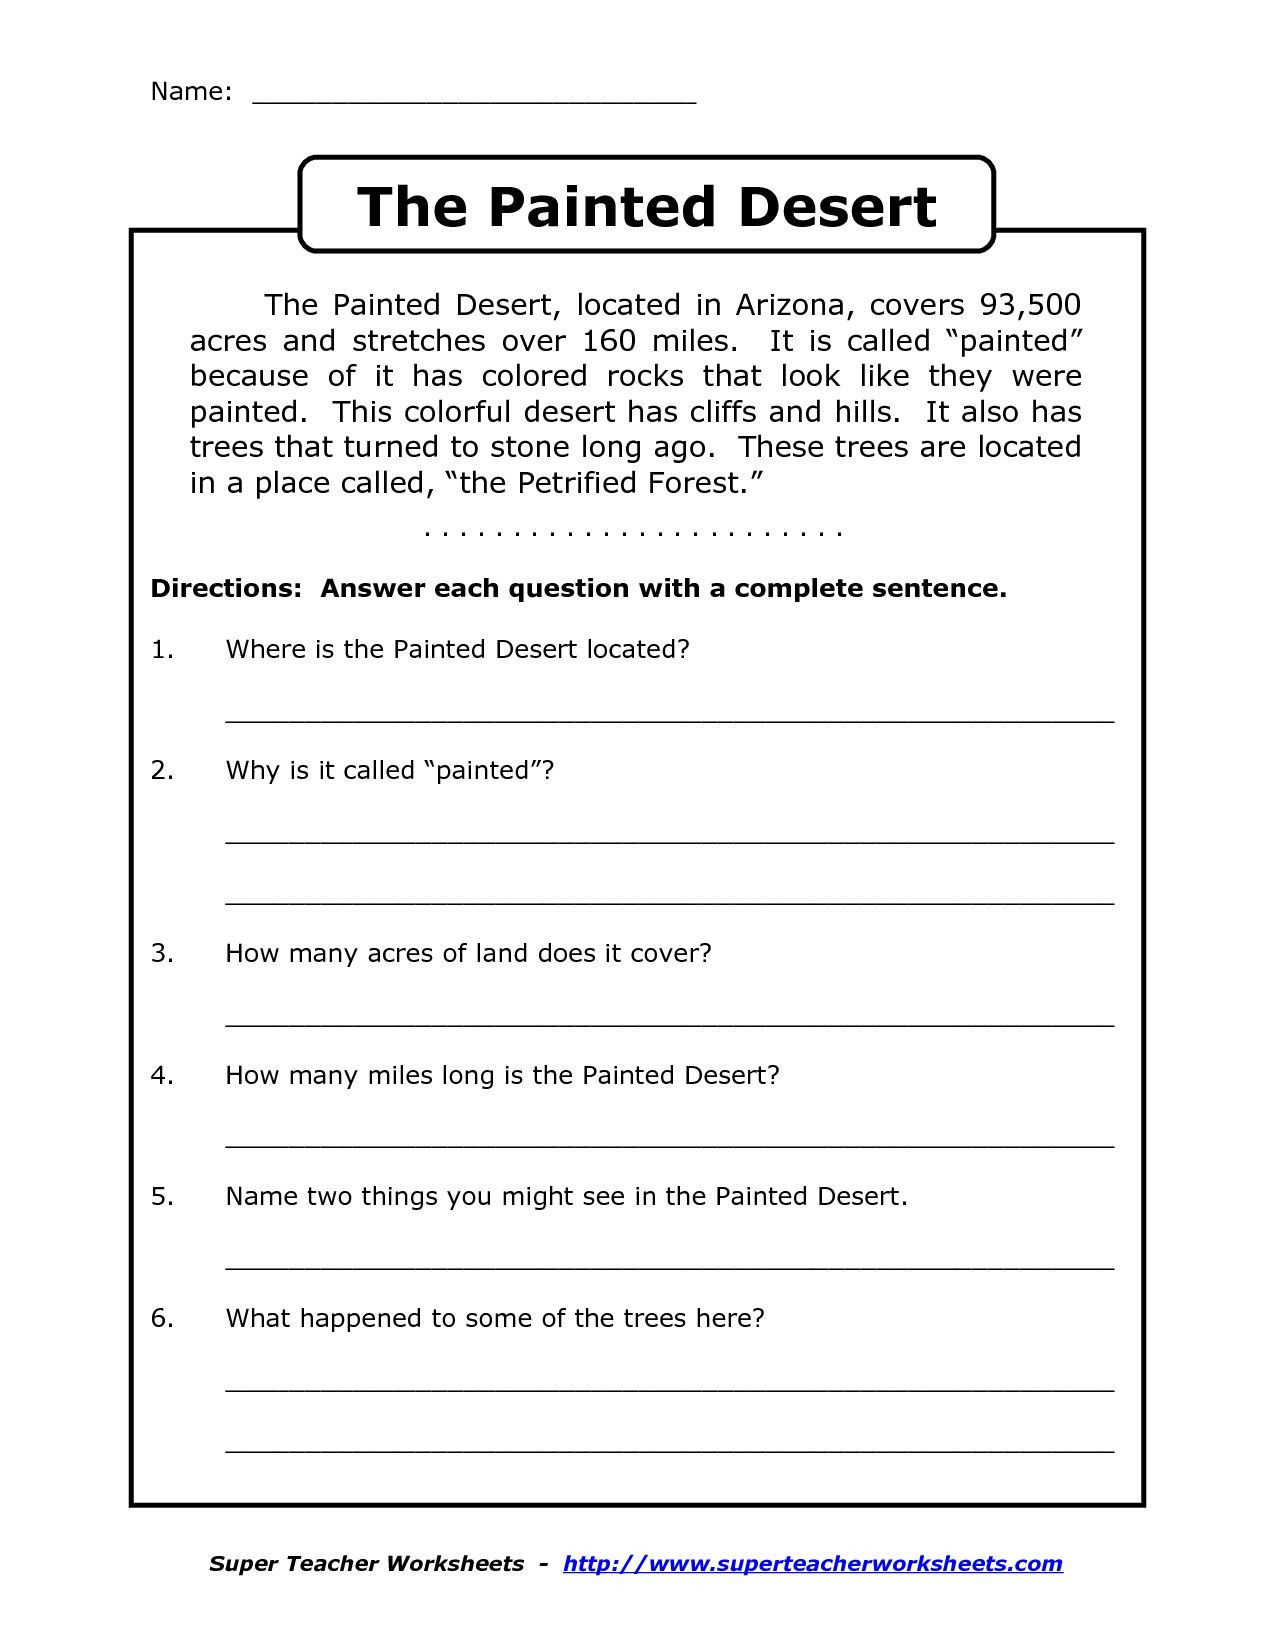 prehension Worksheet for 1st Grade Y2 P3 The Painted